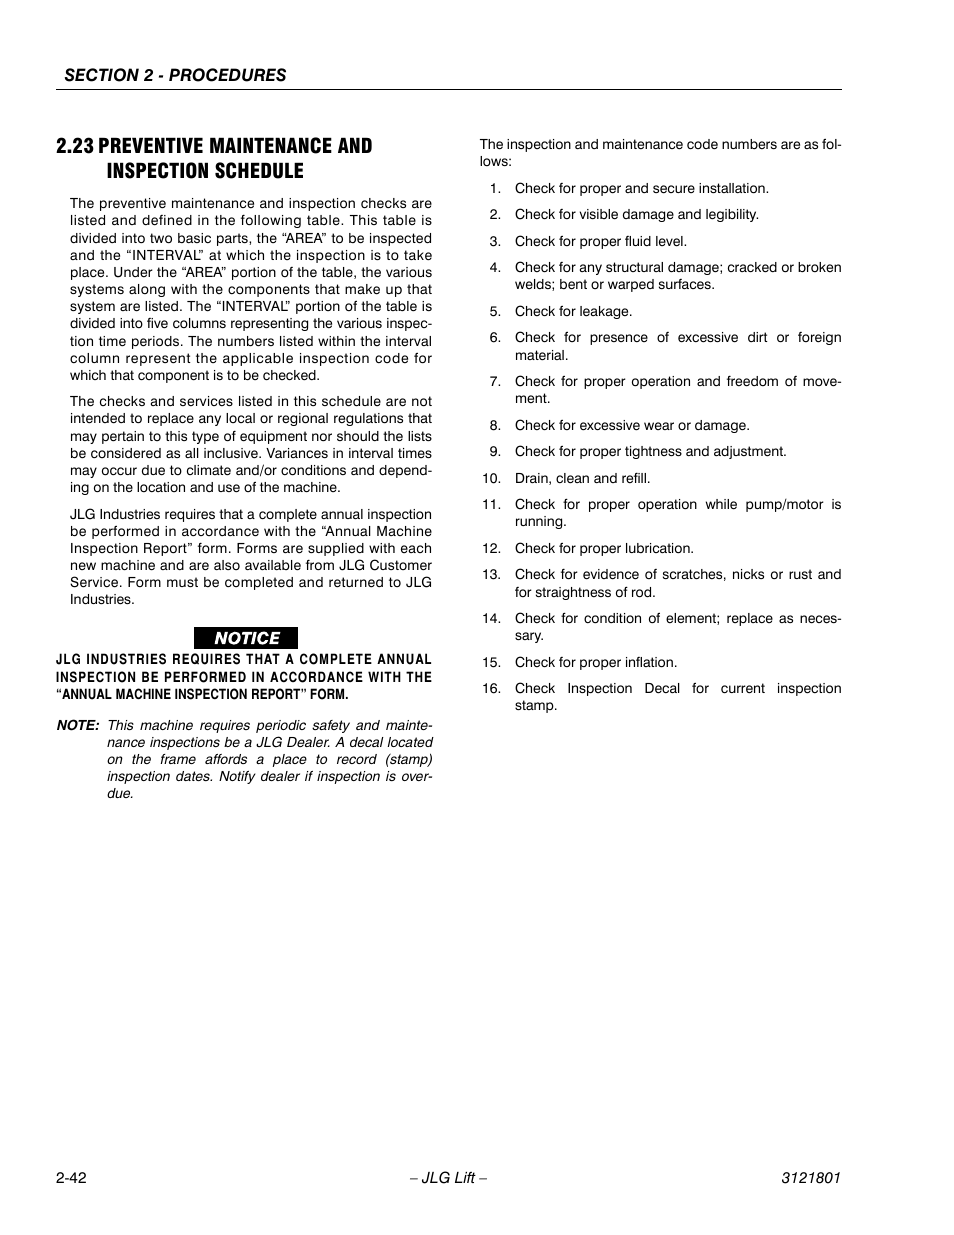 23 Preventive Maintenance And Inspection Schedule